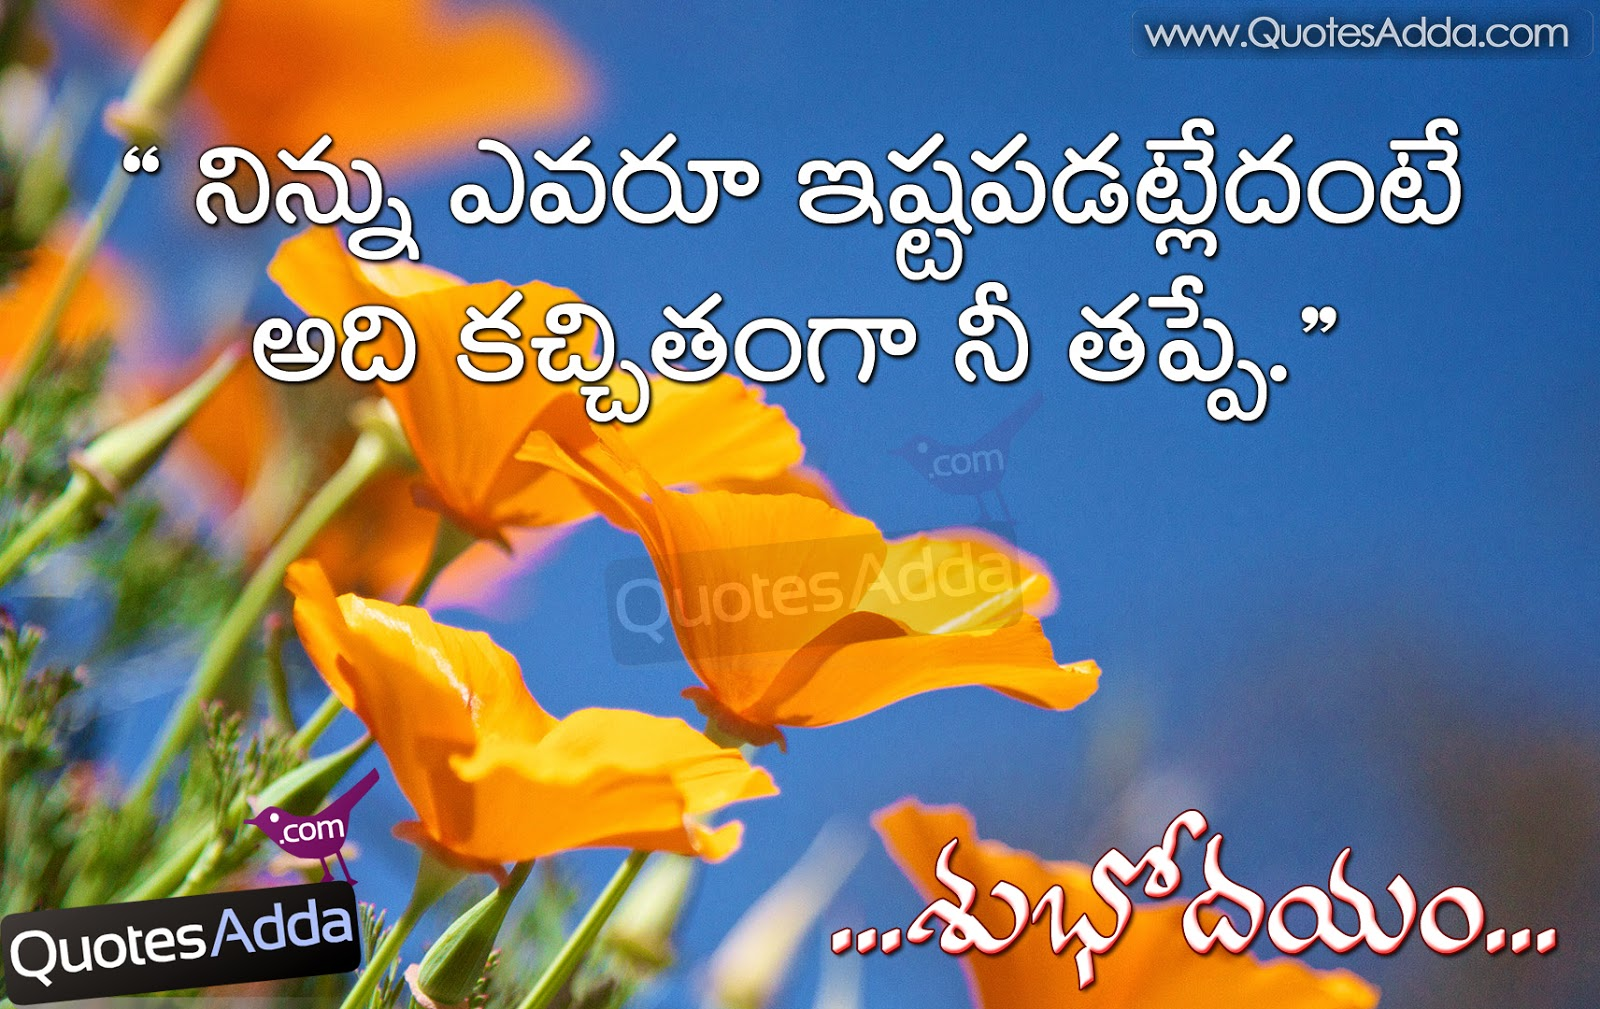 Latest Telugu Good Morning Quotations | QuotesAdda.com | Telugu ...